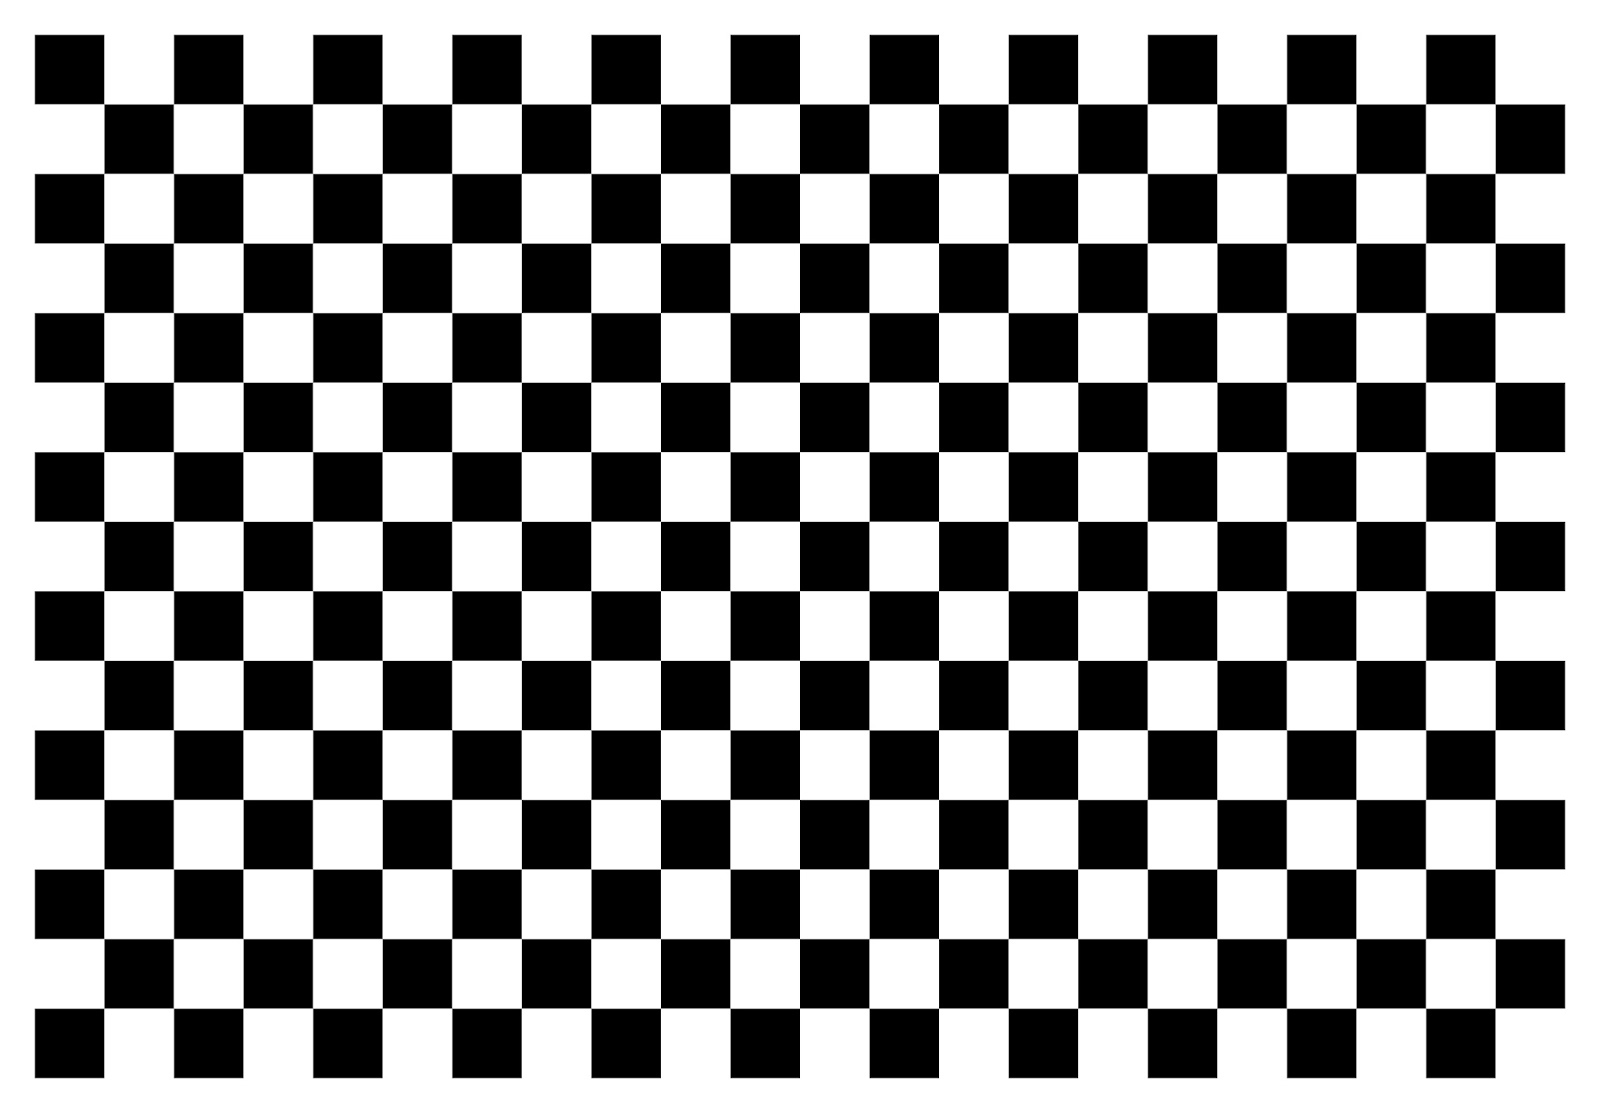 Free Checker Board, Download Free Clip Art, Free Clip Art on.